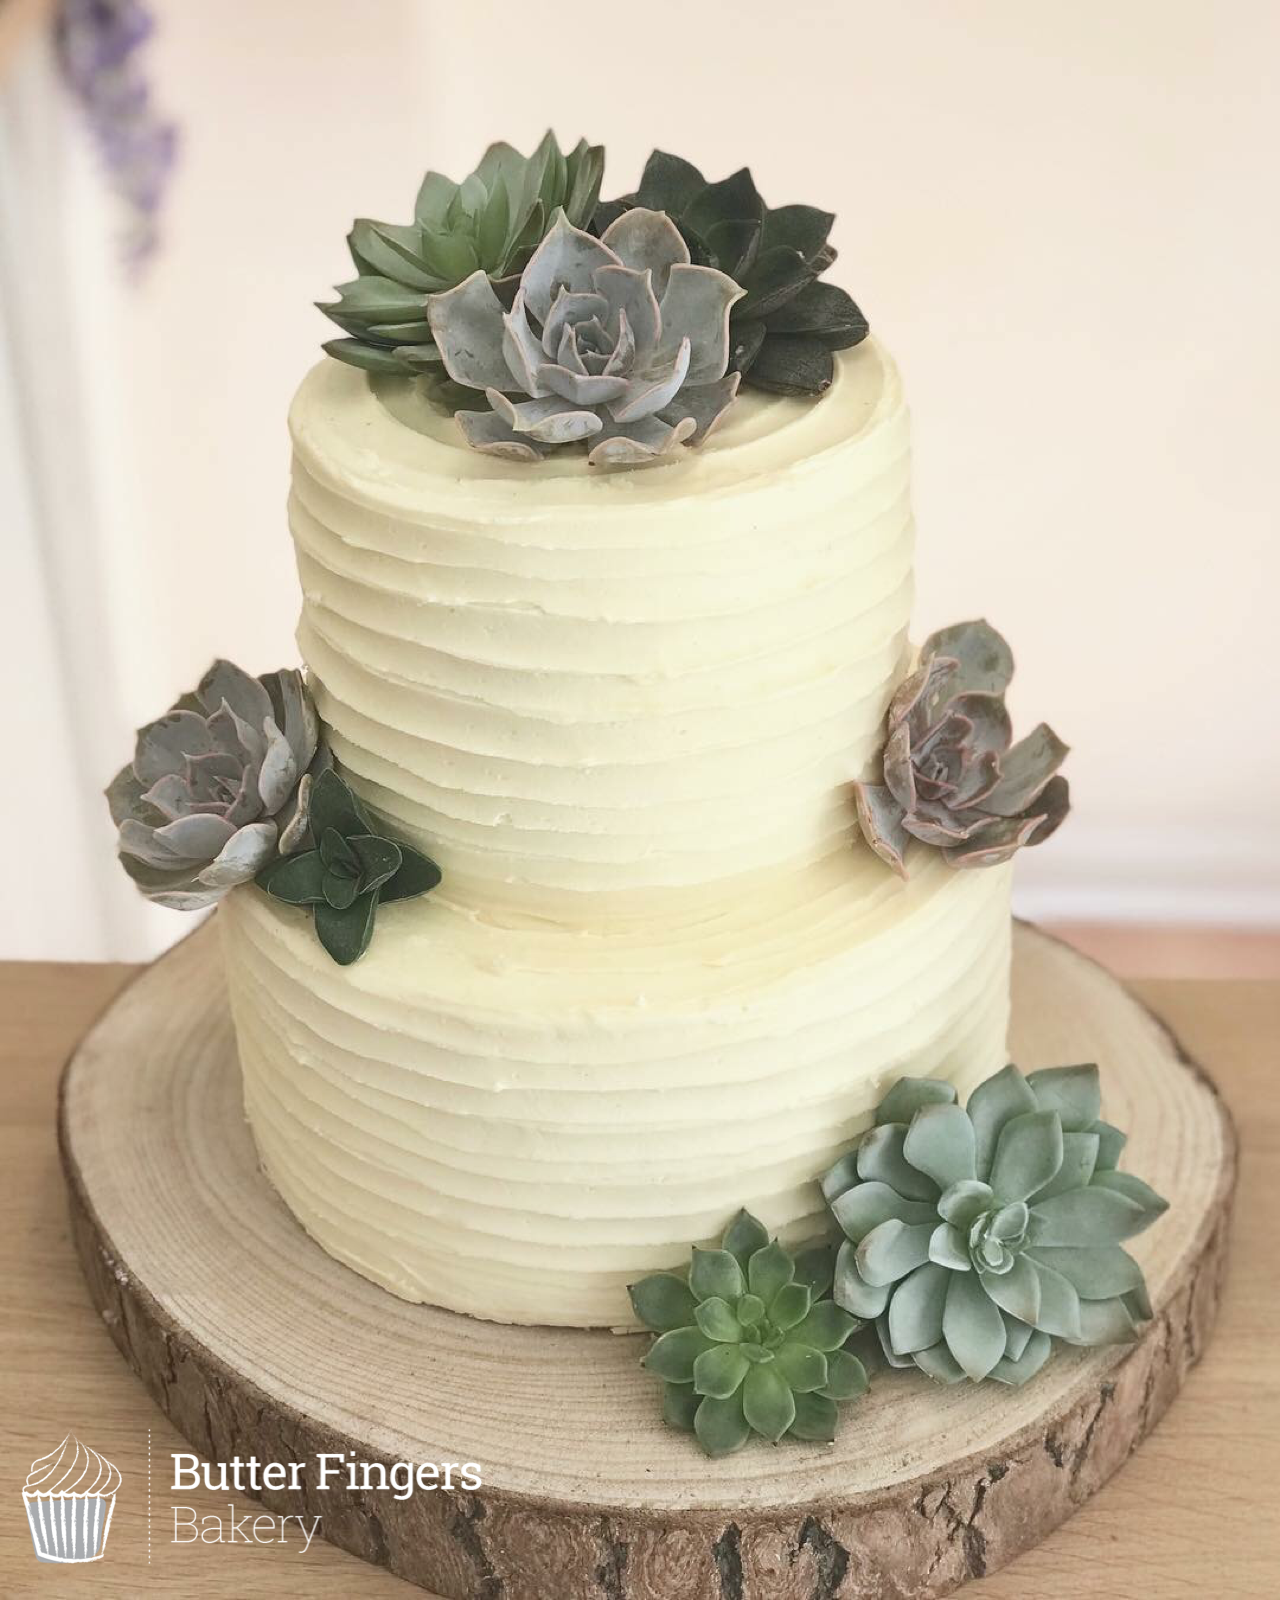 Butter Fingers Bakery Tasty Homemade Cakes Baked Freshly In Matlock Succulent Wedding Cakes Tiered Wedding Cake Homemade Wedding Cake